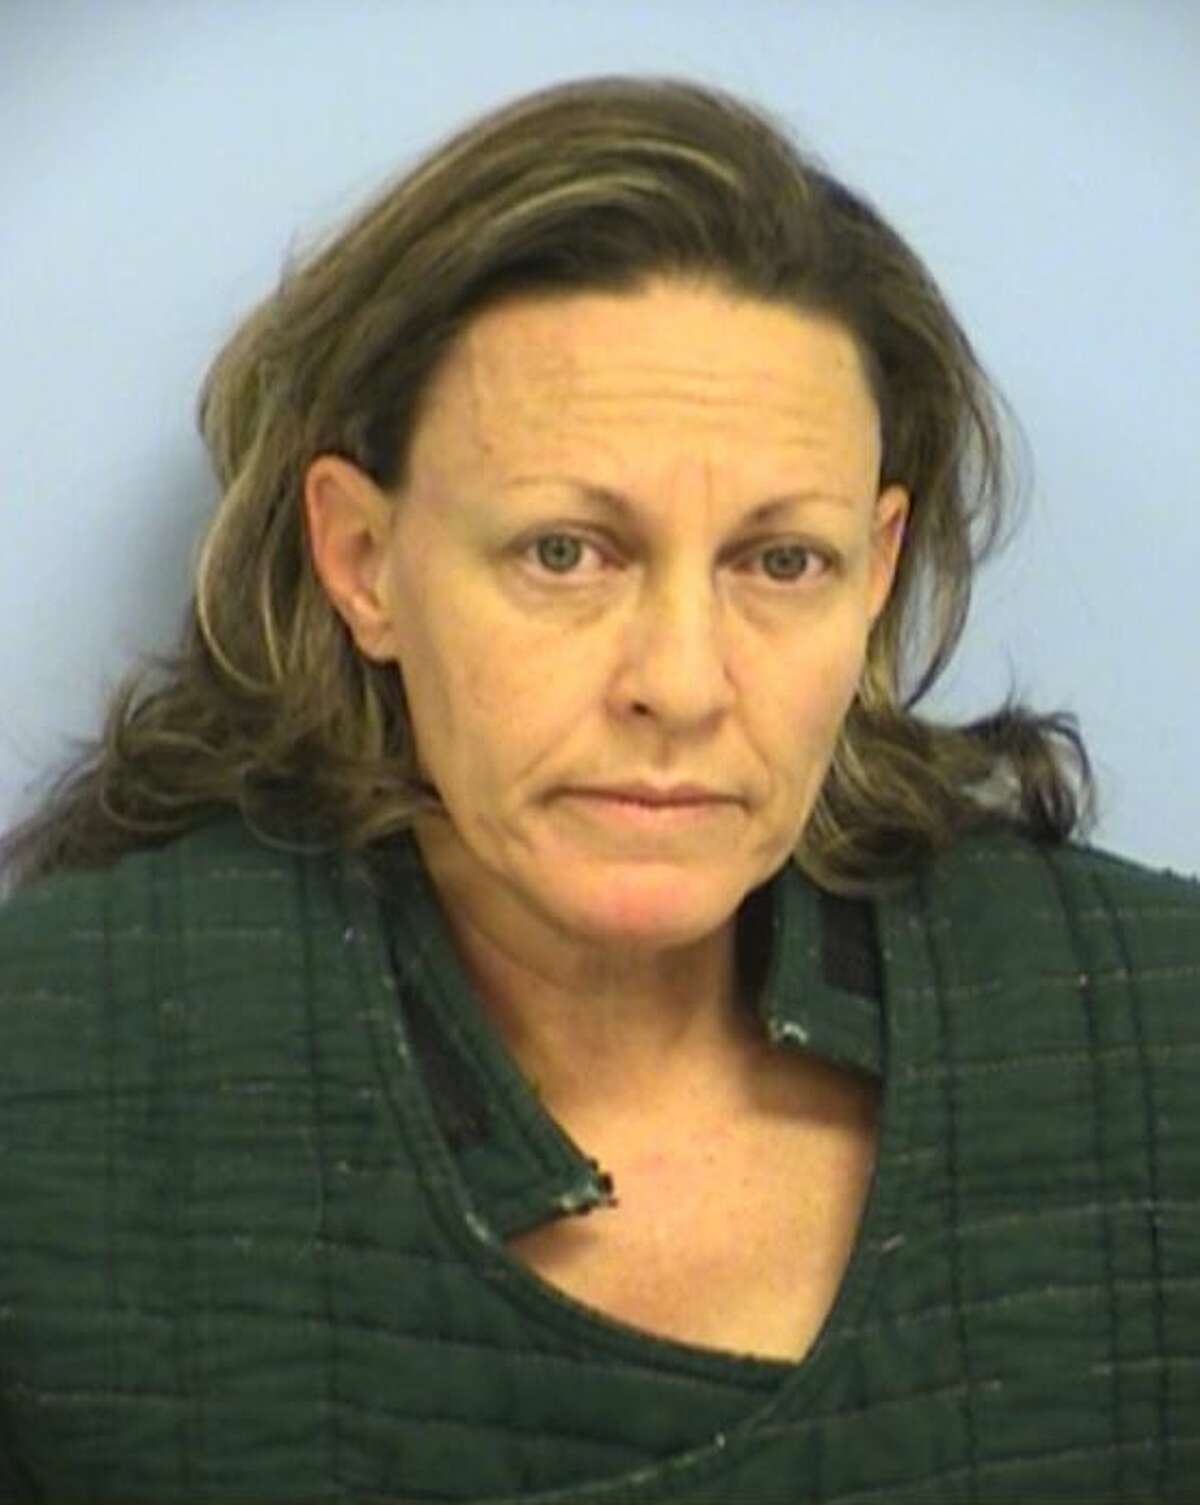 The suspected killer, Charity Sunshine Ellis, now faces a charge of murder. She's being held in the Travis County Jail on a $400,000 bond.